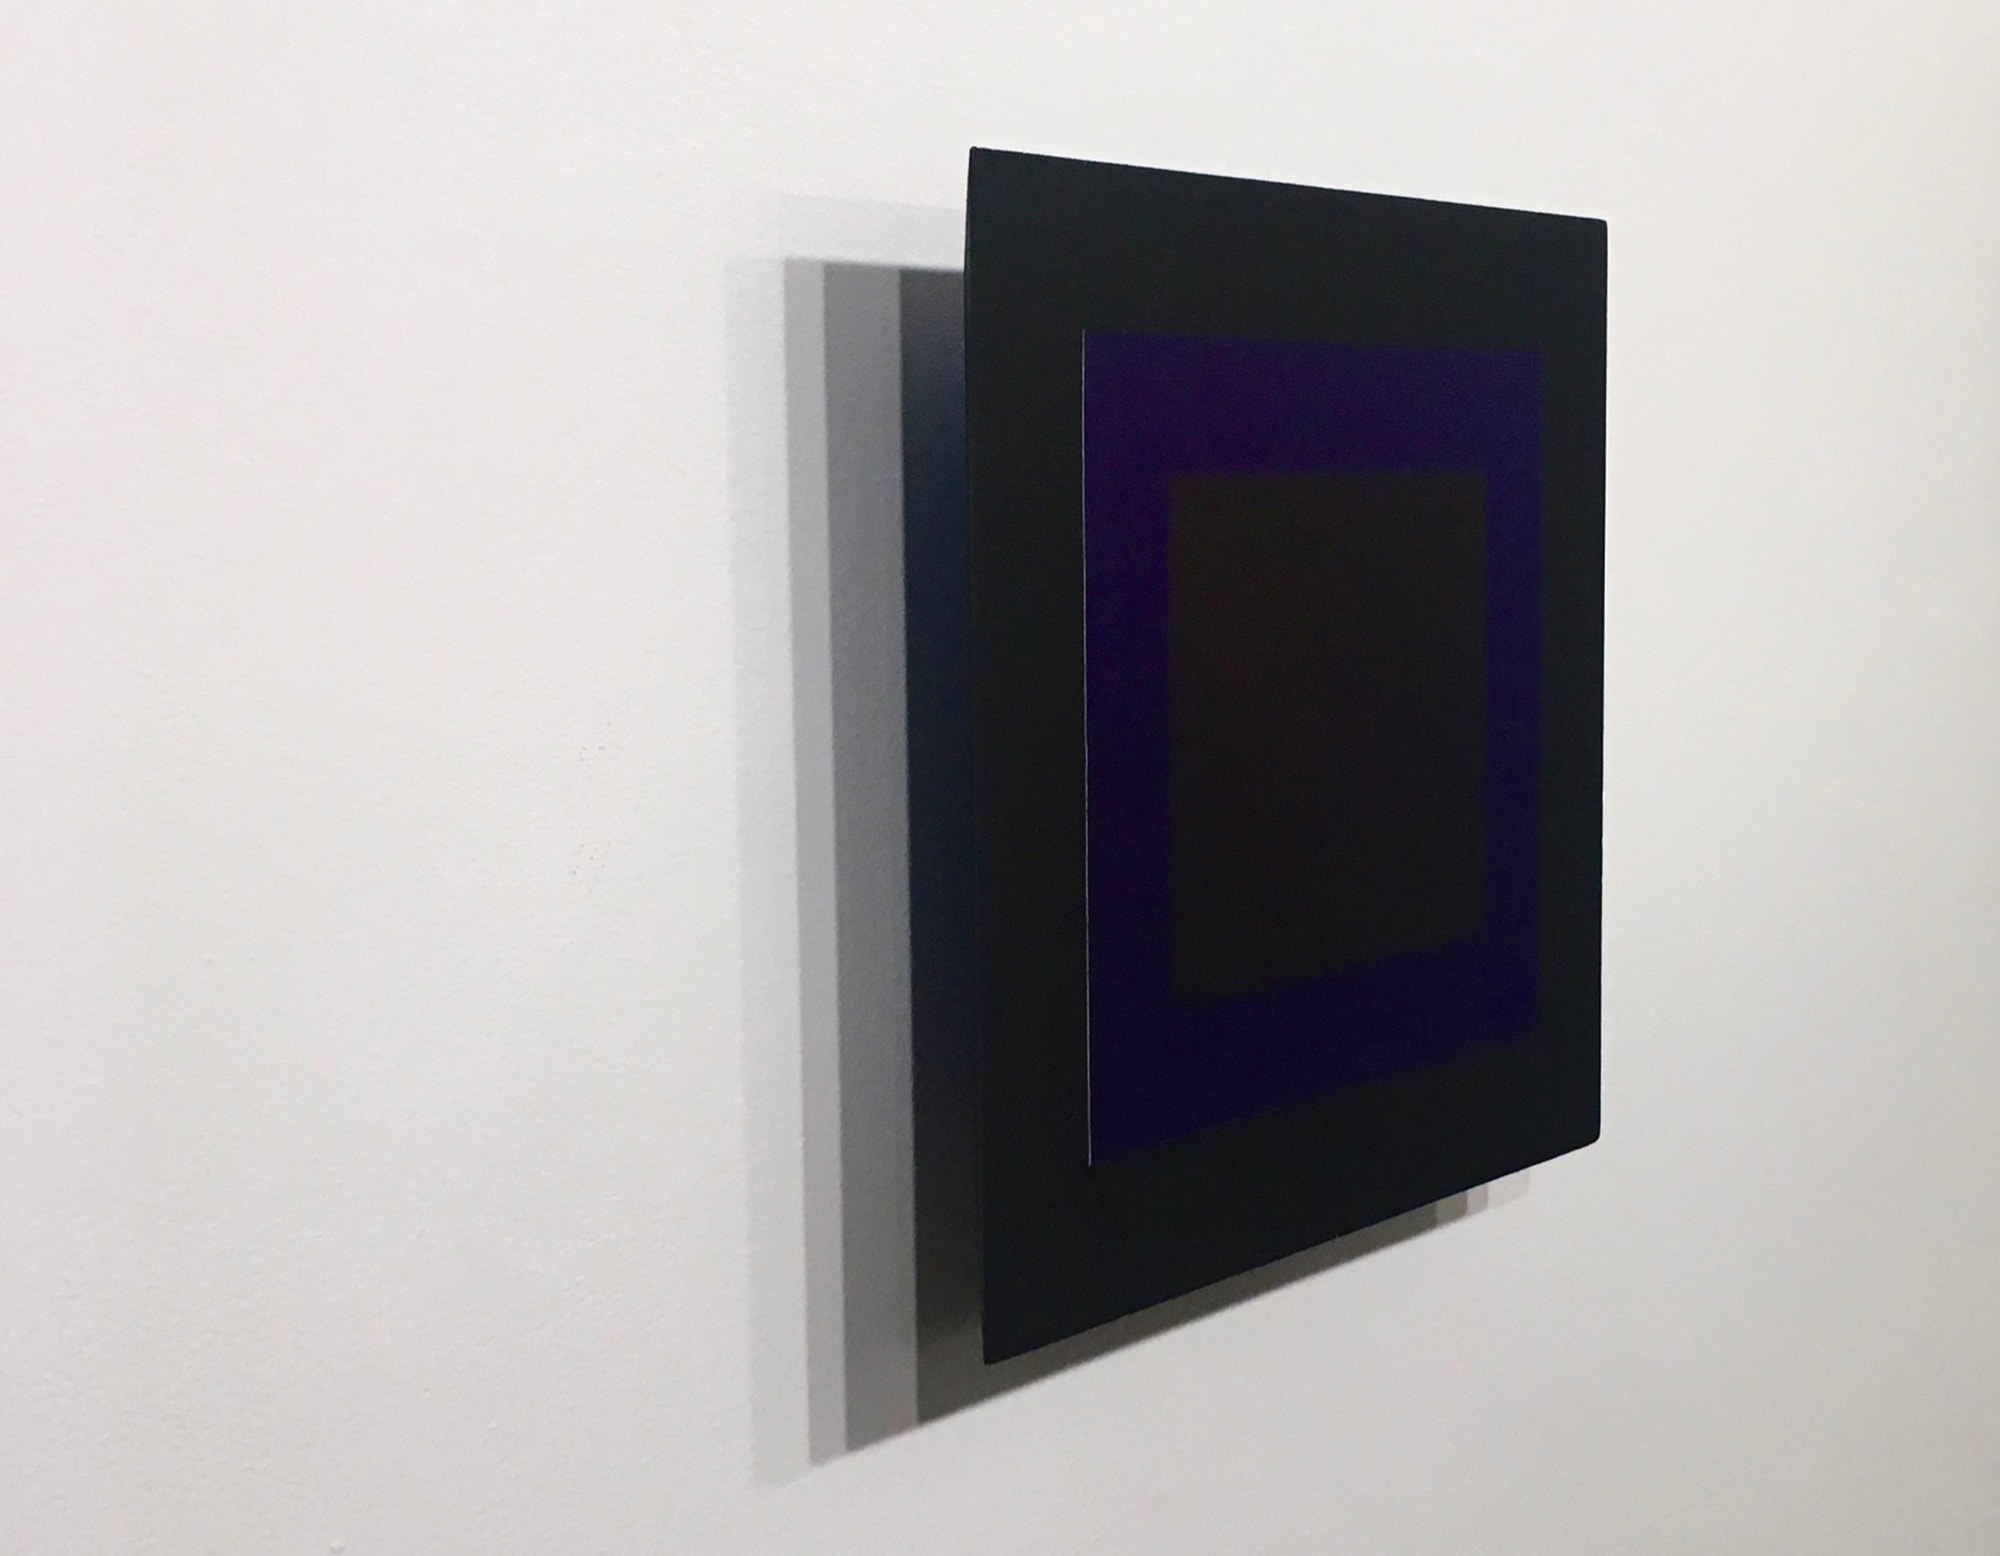 Randy Gibson's <em>Quadrilateral Starfield Symmetry A:L II - Homage</em> - Holland Rubber Ink, Hot Press Paper, Acrylic, Varnish, PVA, and Enamel on MDF - 2017 - Installed at Matteawan Gallery, Beacon, NY